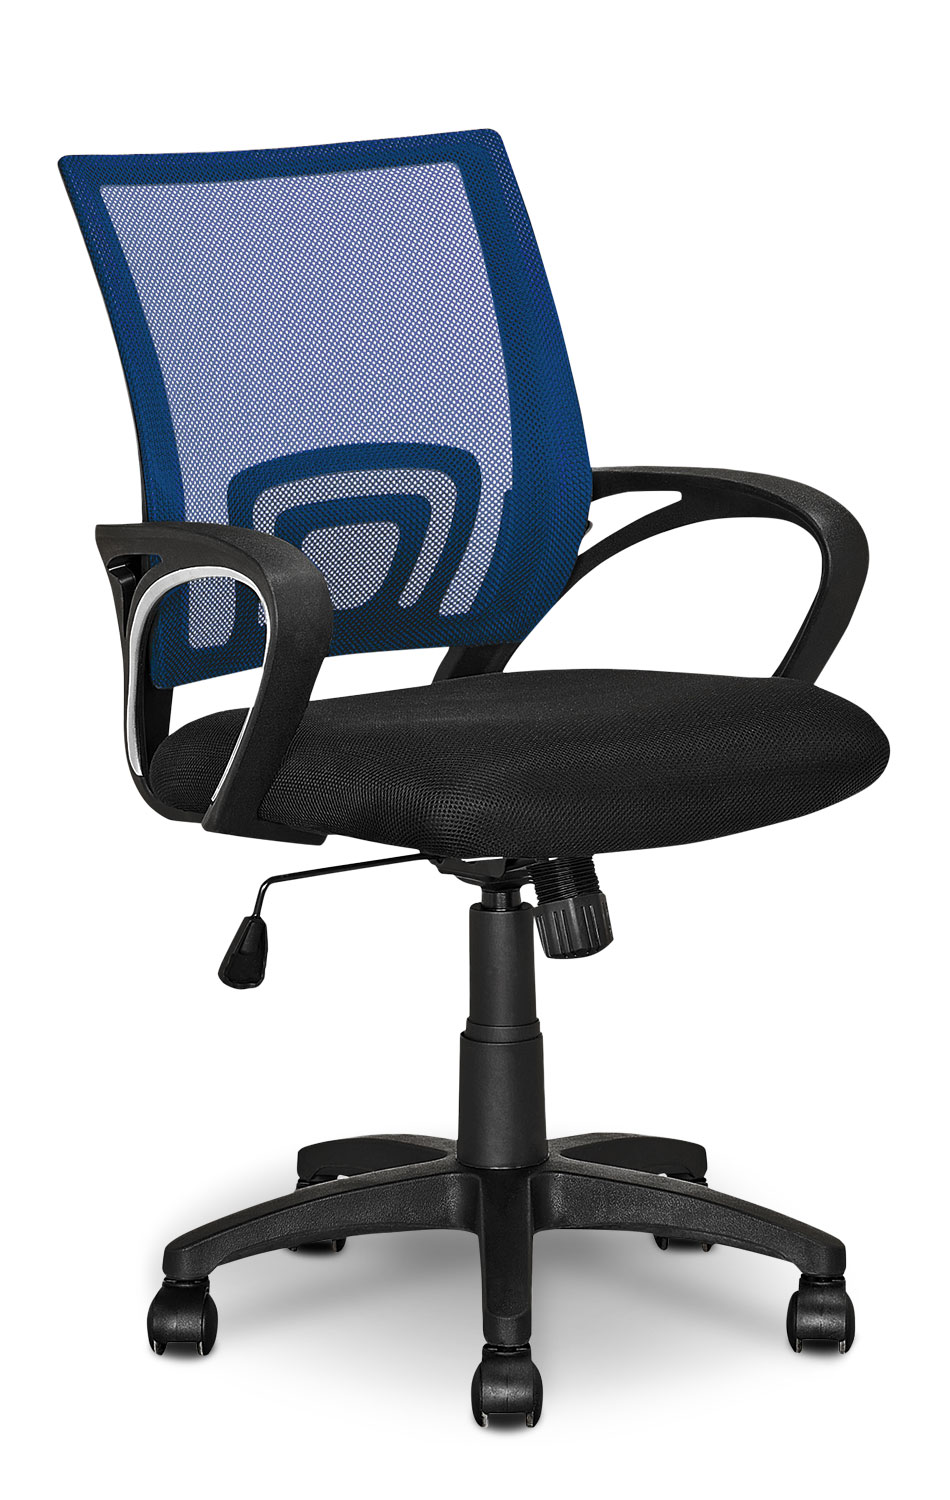 Home Office Furniture - Loft Mesh Office Chair – Dark Blue